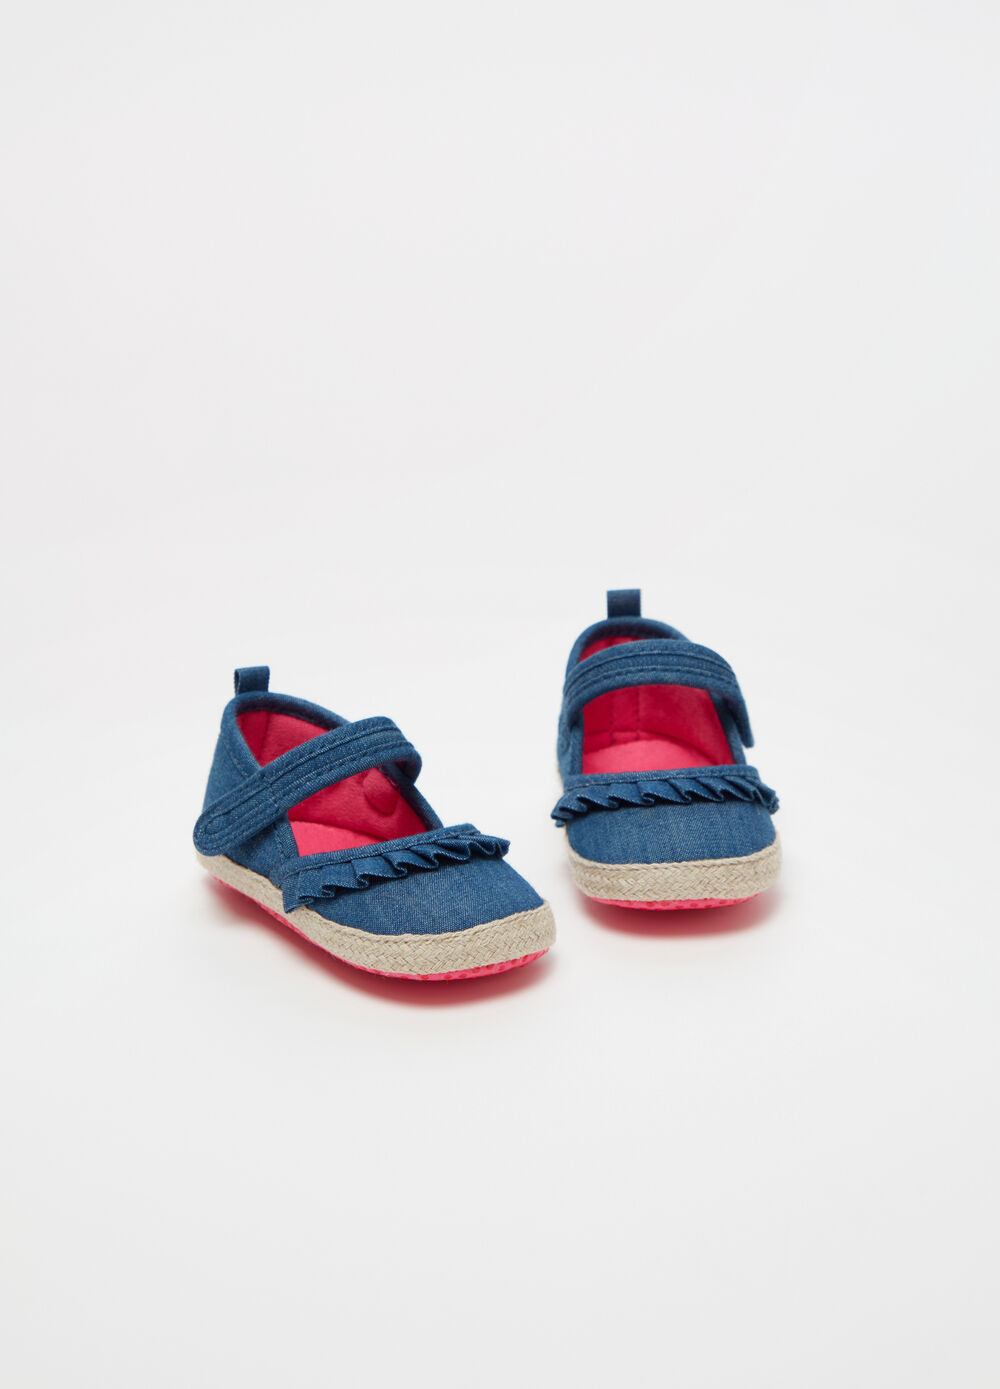 Baby girl shoes in pleated denim